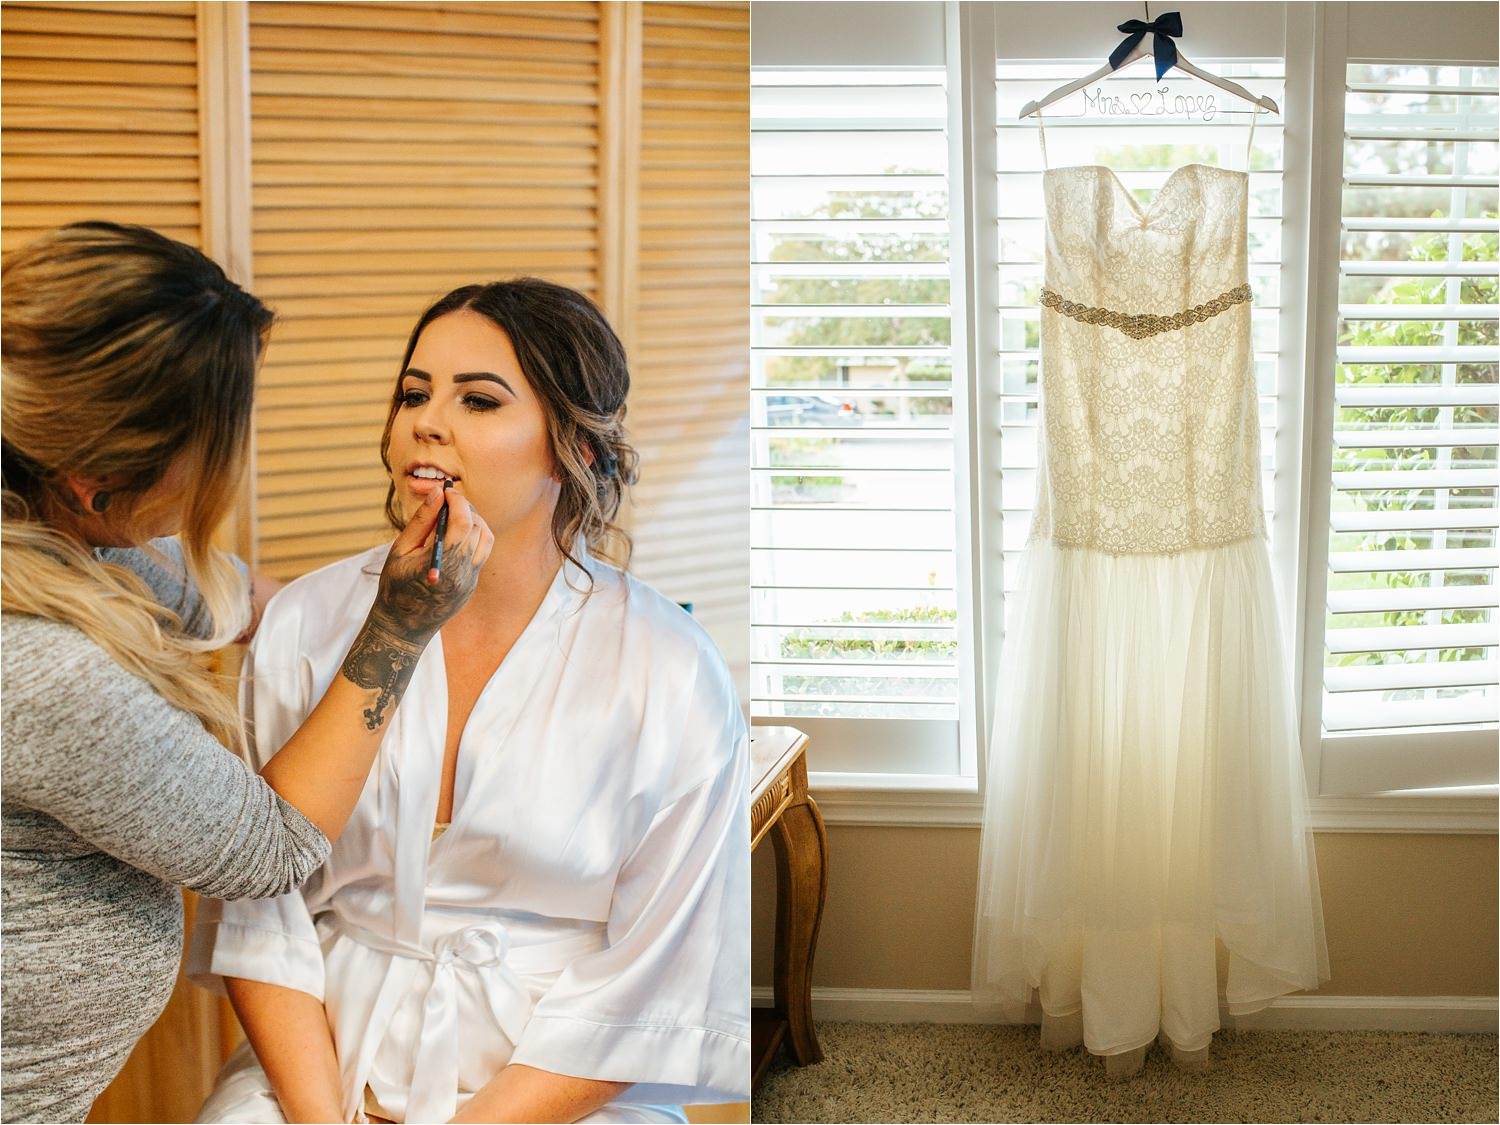 Claremont Wedding Photographer - http://brittneyhannonphotography.com